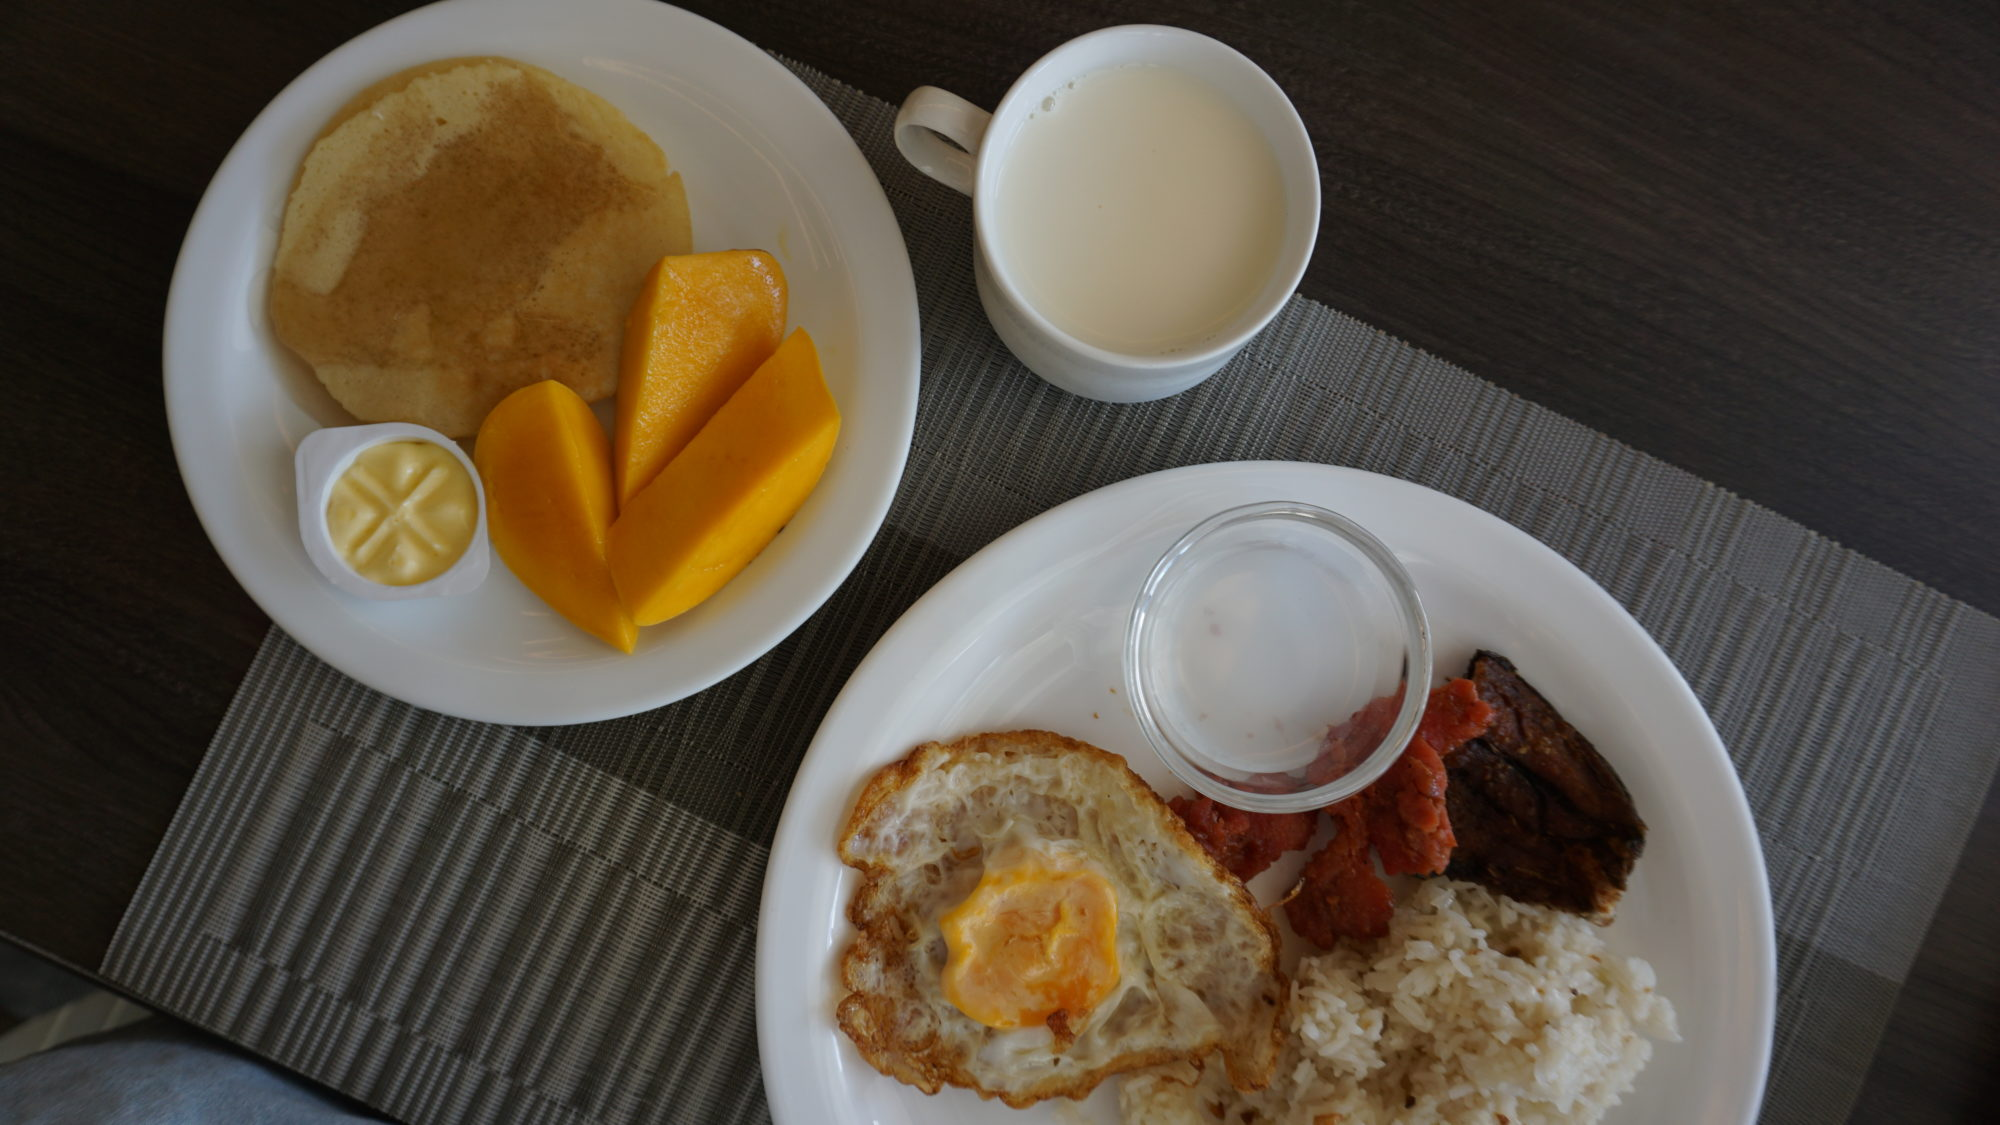 A Filipino breakfast and pancakes served with a side of sweet Guimaras mangoes